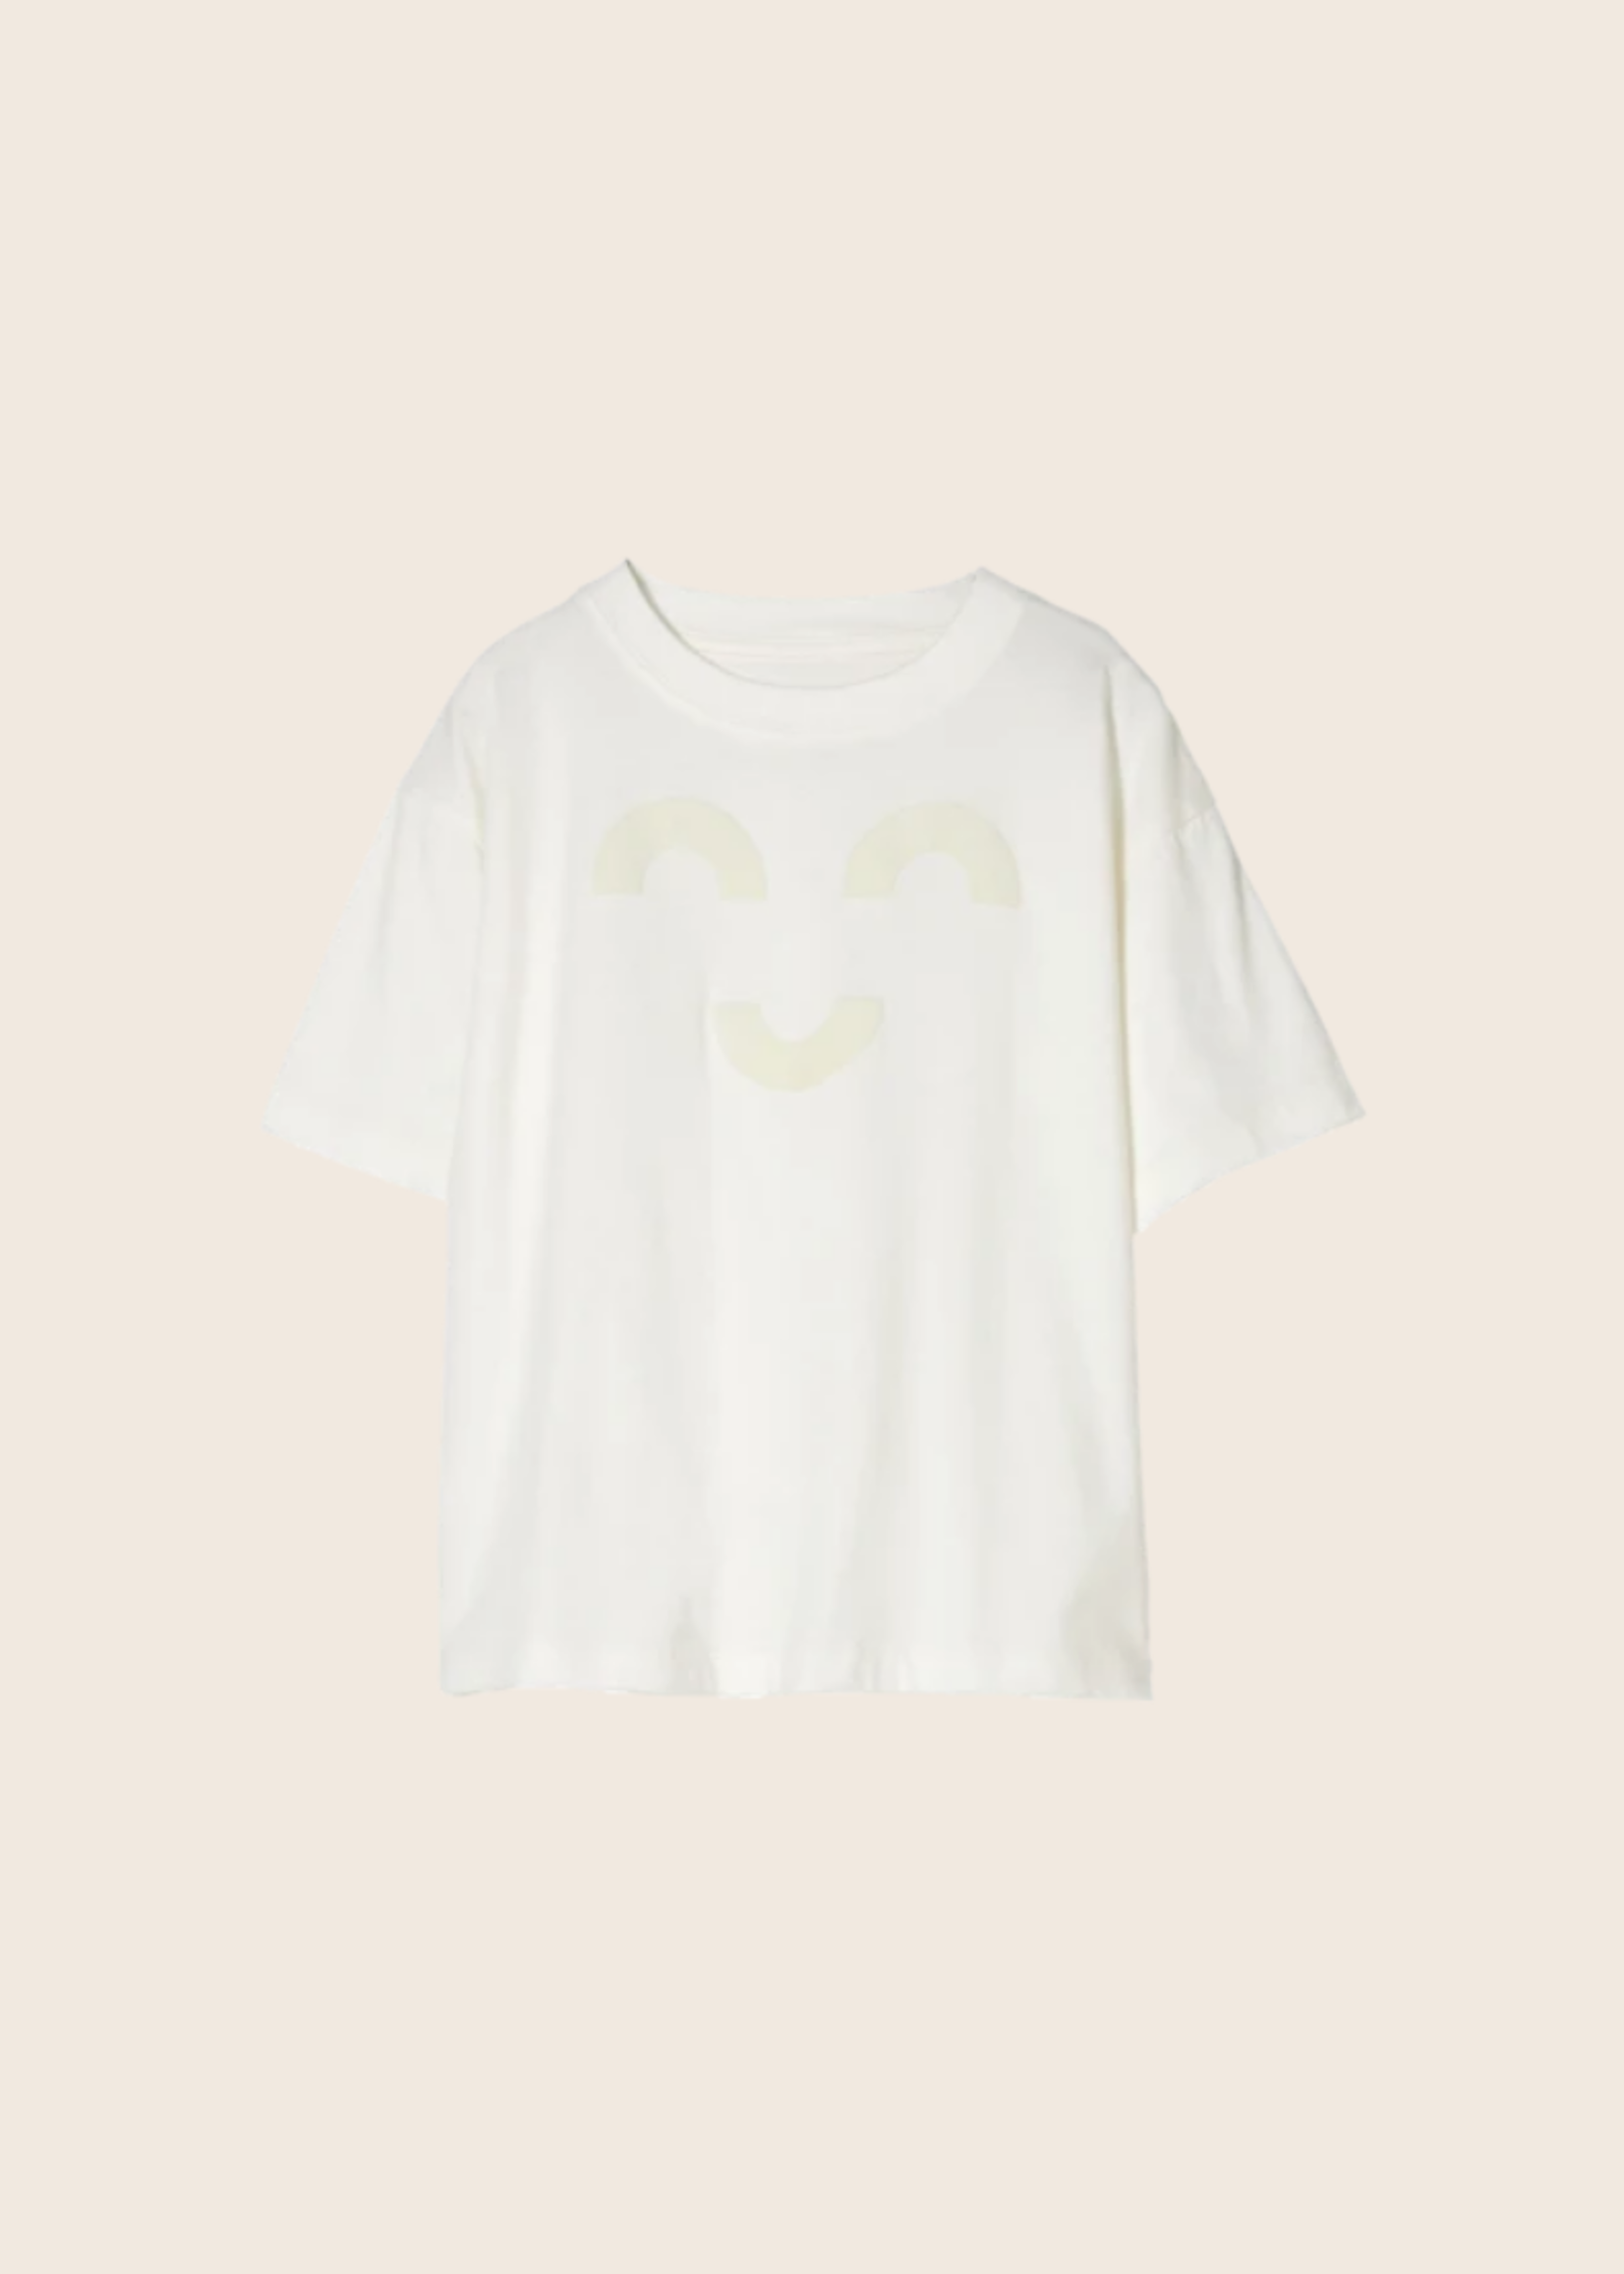 FINGER IN THE NOSE KING Off White Macaroni - Short Sleeves T Shirt Boy / Knitted